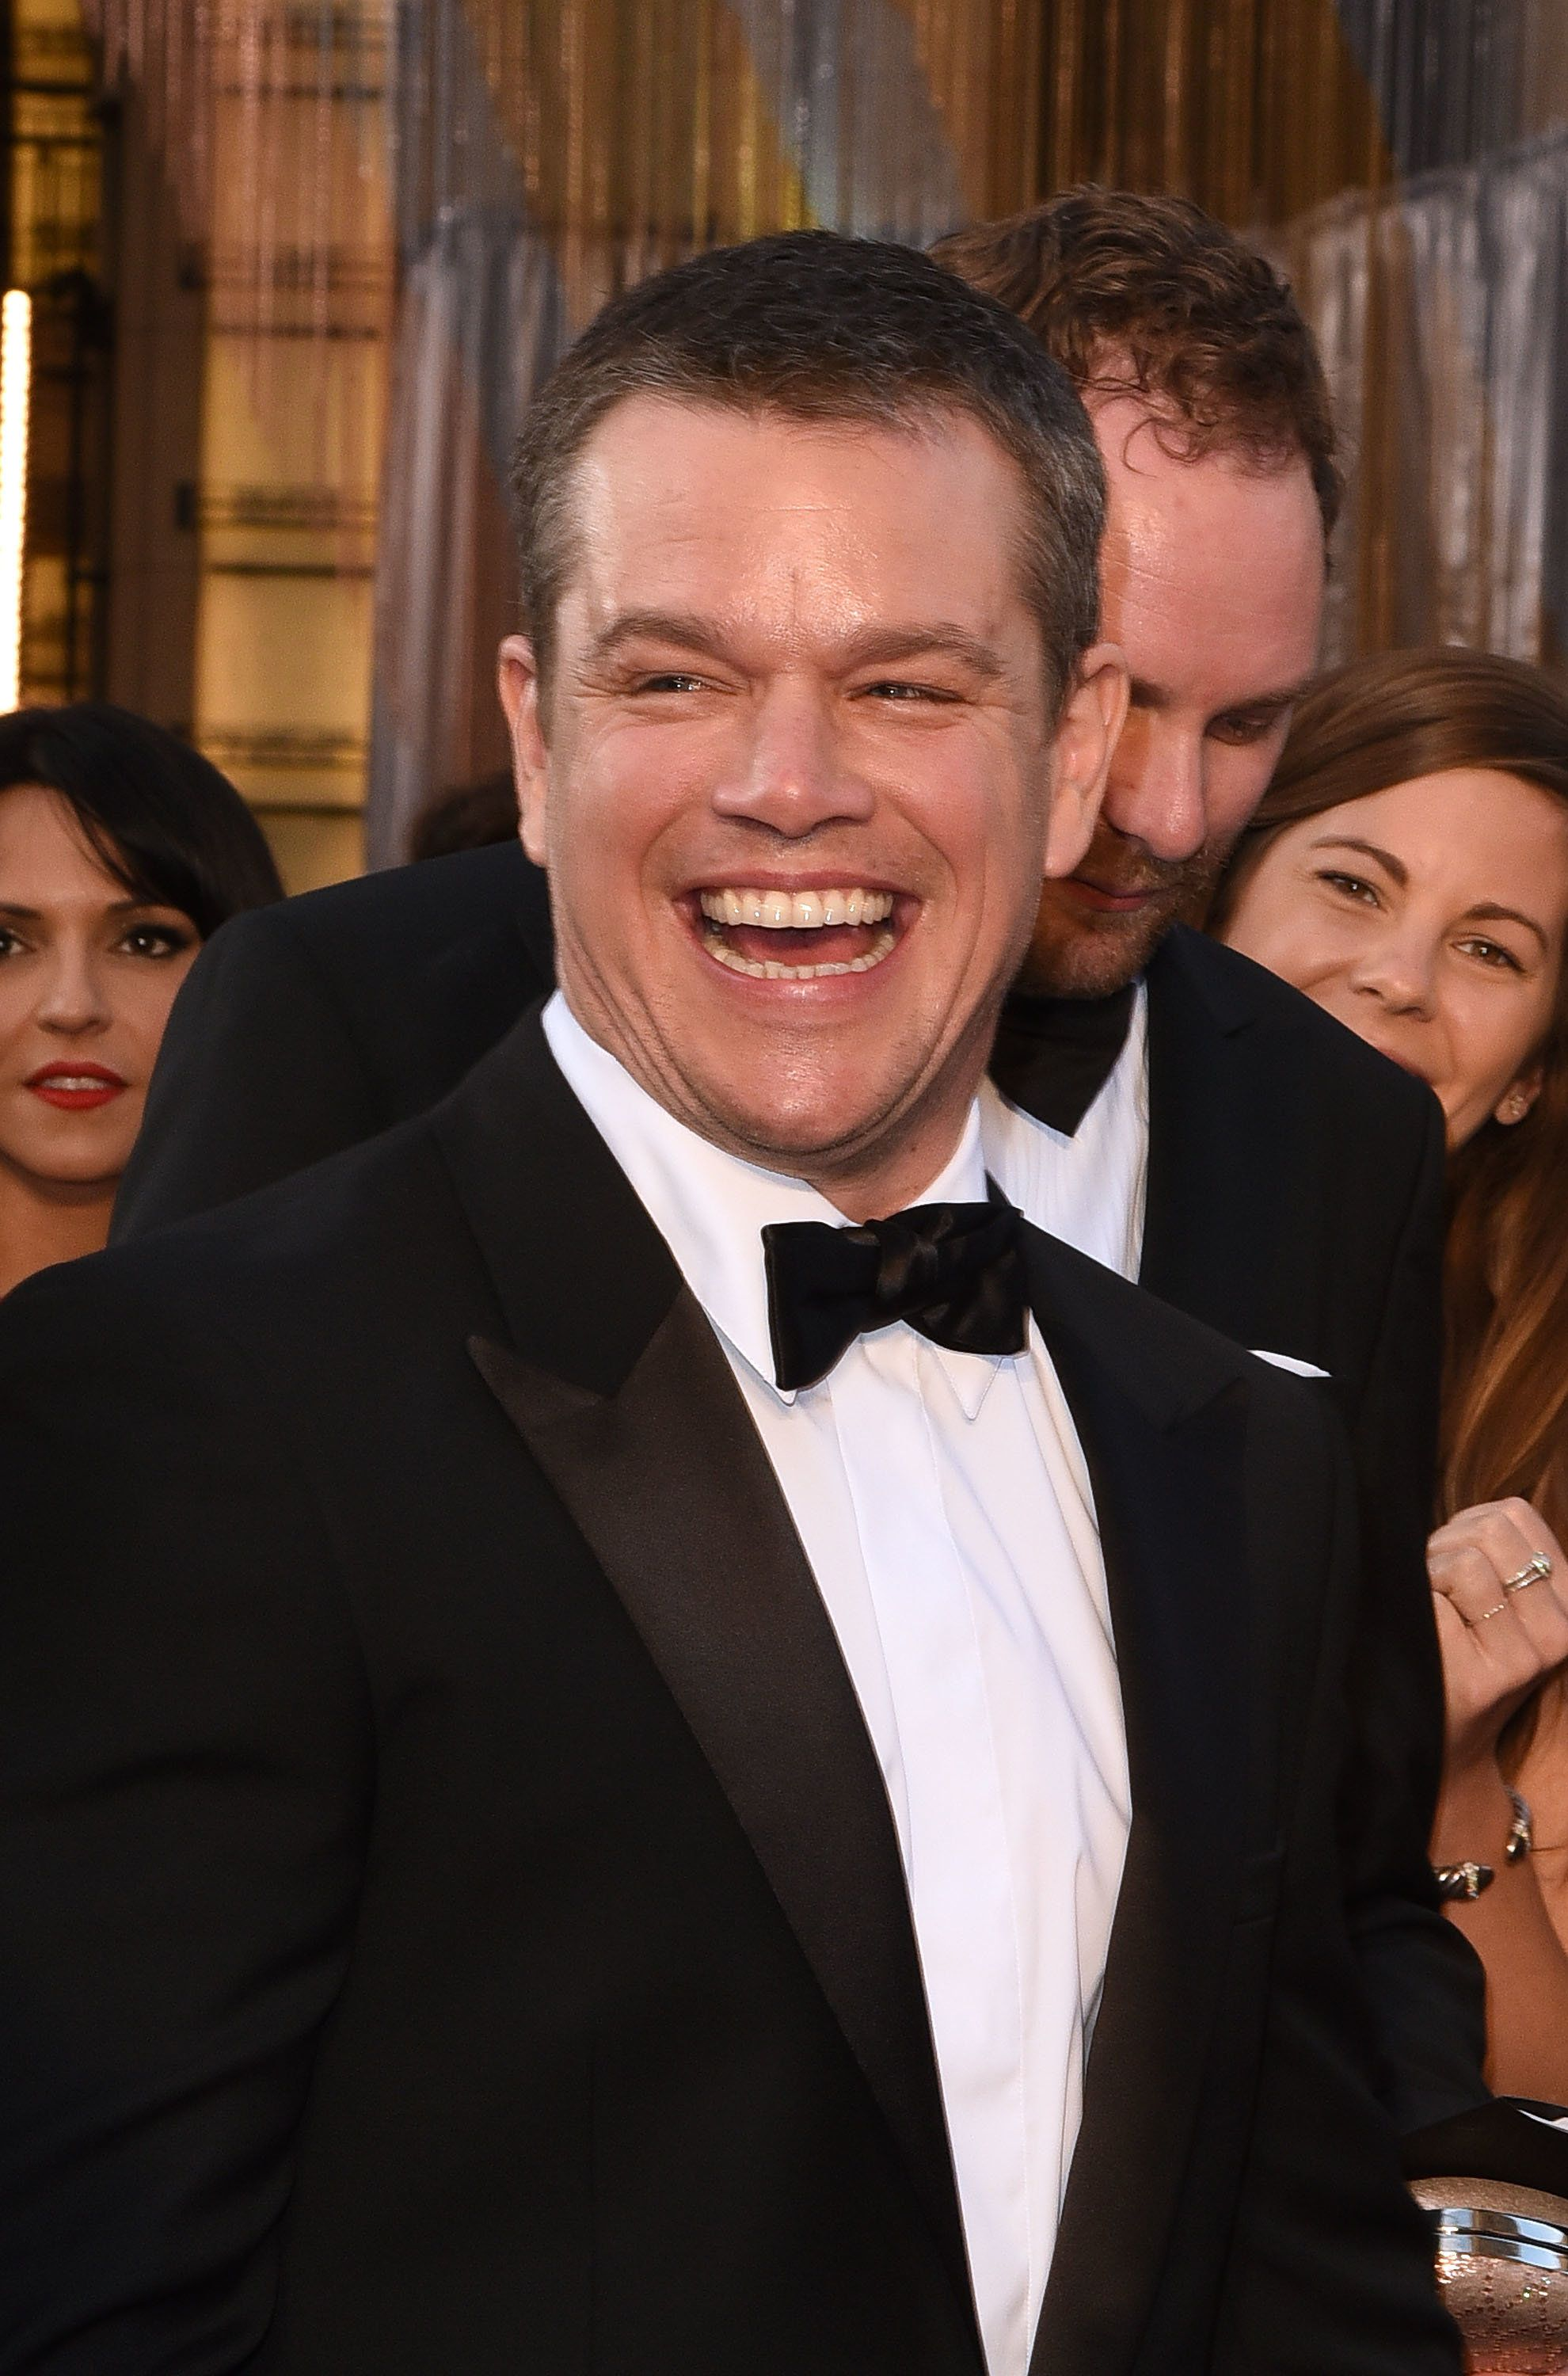 HOLLYWOOD, CA - FEBRUARY 28:  Actor Matt Damon attends the 88th Annual Academy Awards at the Hollywood & Highland Center on February 28, 2016 in Hollywood, California.  (Photo by C Flanigan/FilmMagic)